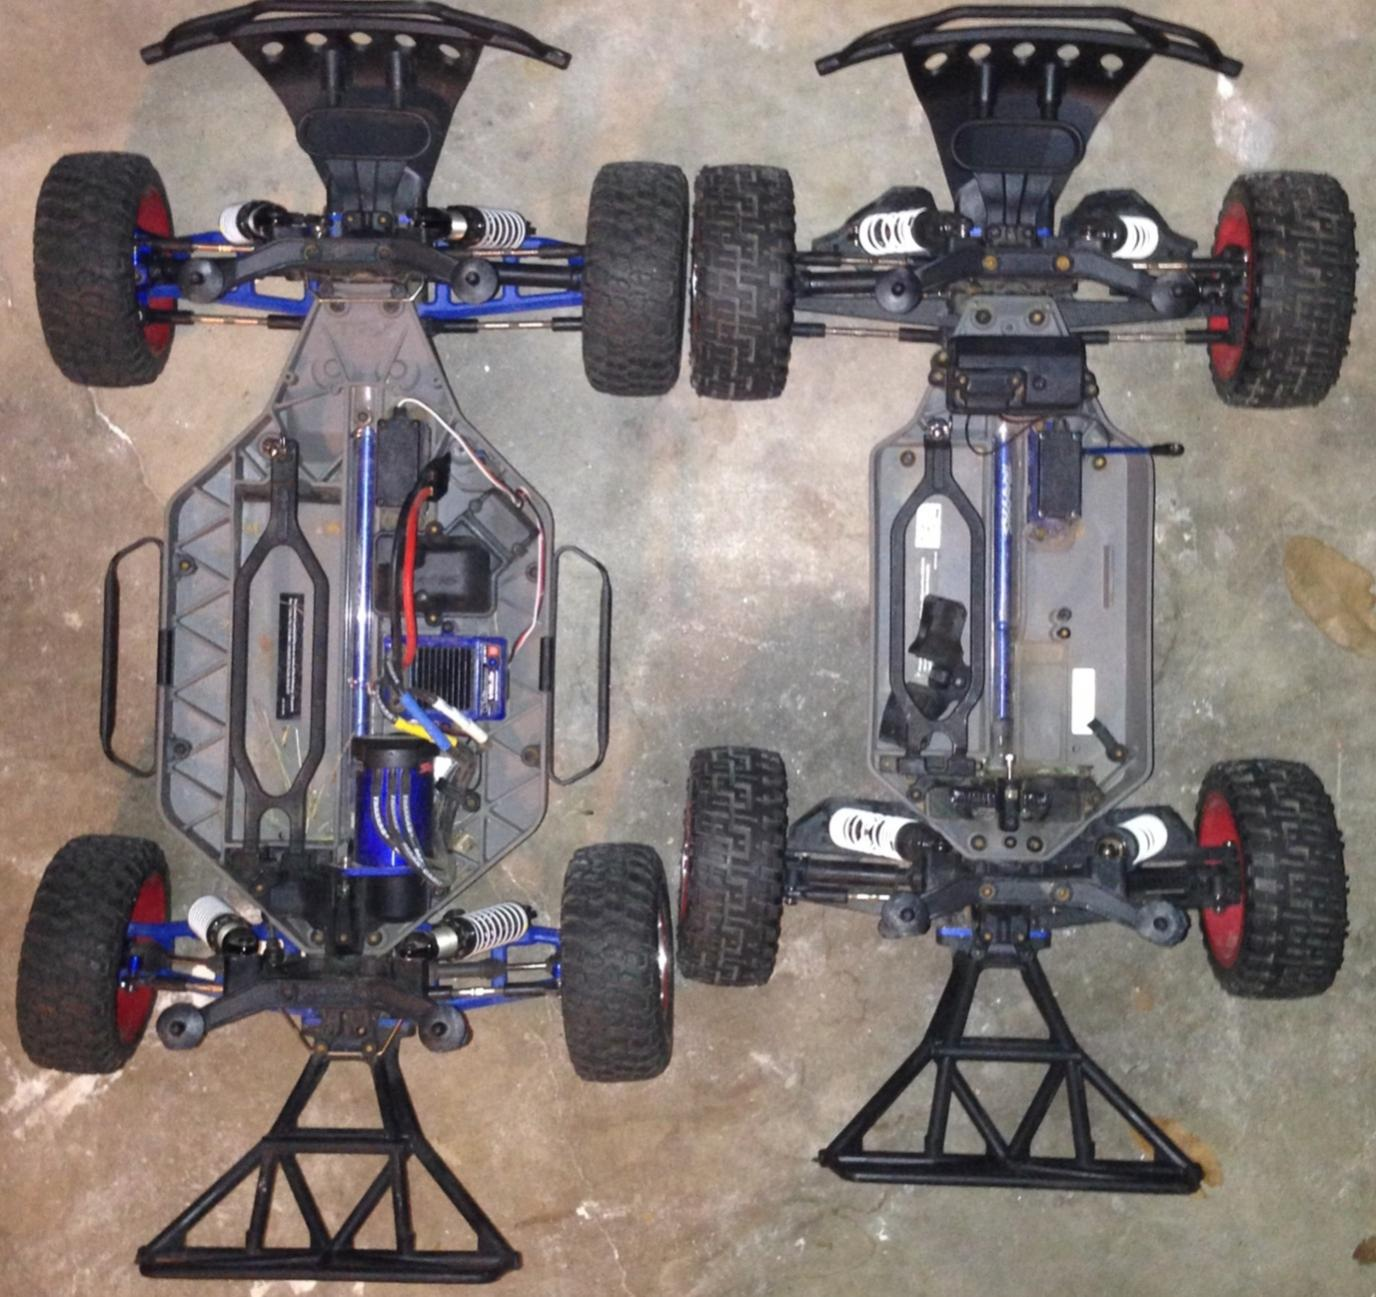 traxxas brushless rc trucks with 751317 Crawler Fail My Brushless Version New Traxxas Telluride 4x4 on Tra8611g likewise Heres Every Photo Arrmas New 4x4s together with Traxxas 6708 St ede 4wd Vxl Electric Brushless 24ghz Monster Truck further Besser Modellbau npage in addition ments.